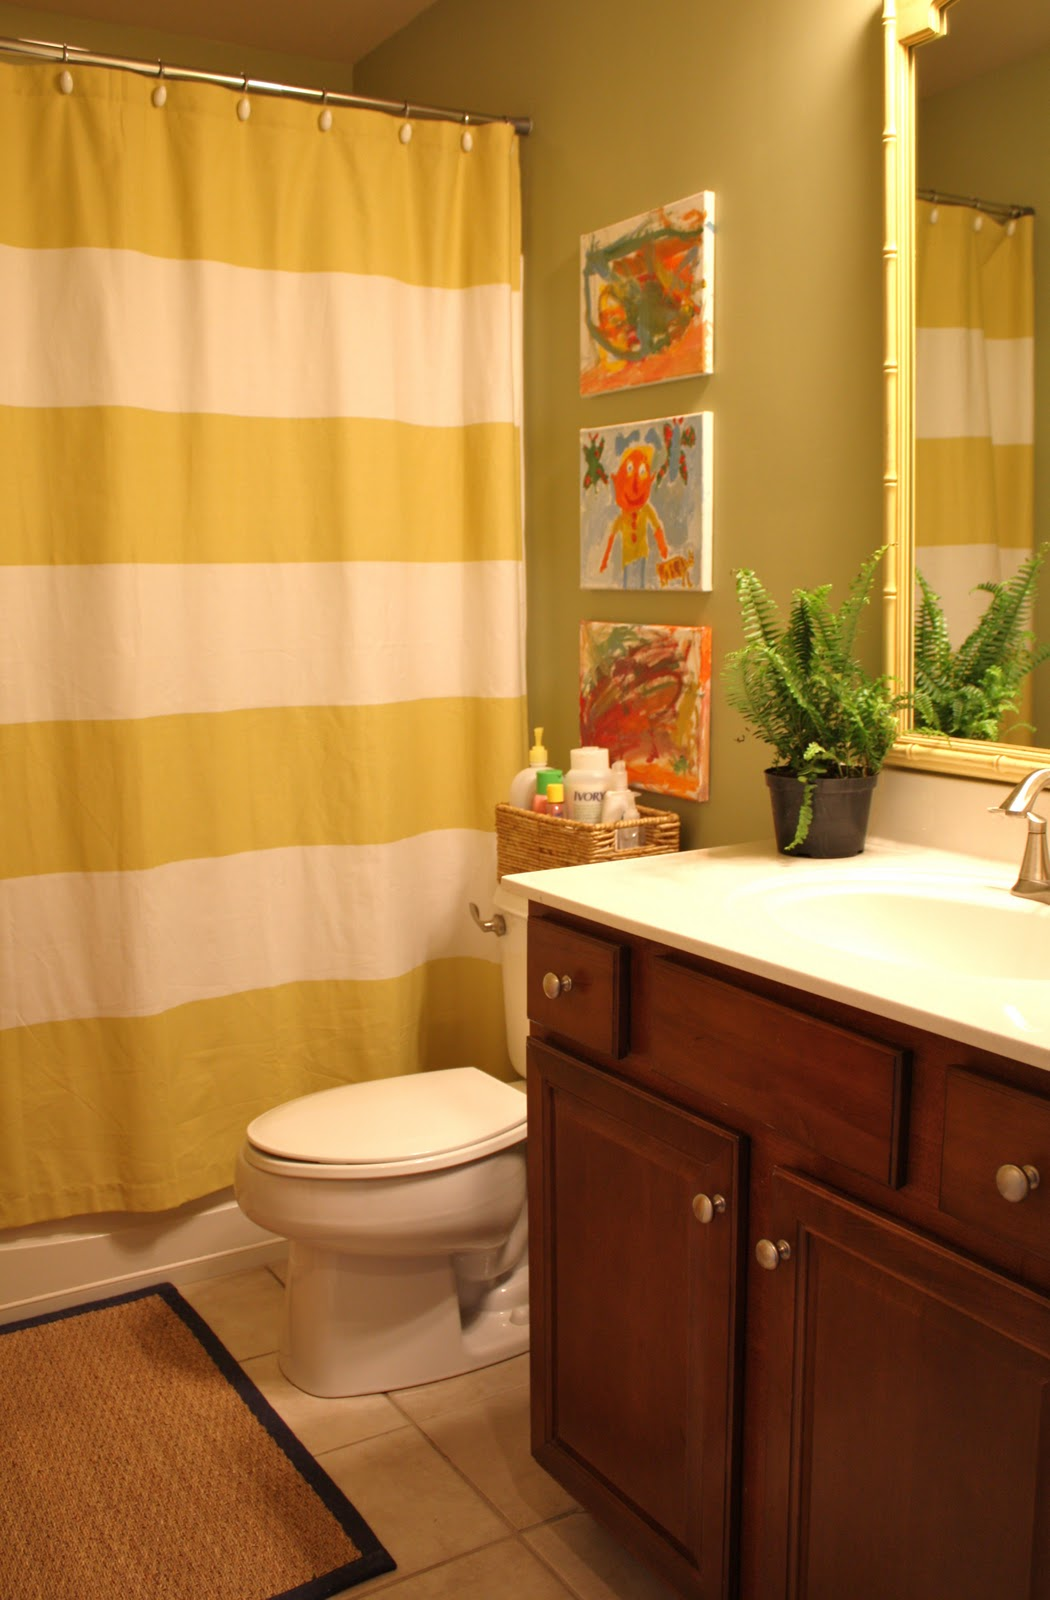 Decorating Ideas > My Kids Bathroom Creating A Shared Space  Emily A Clark ~ 090803_Unisex Bathroom Decorating Ideas